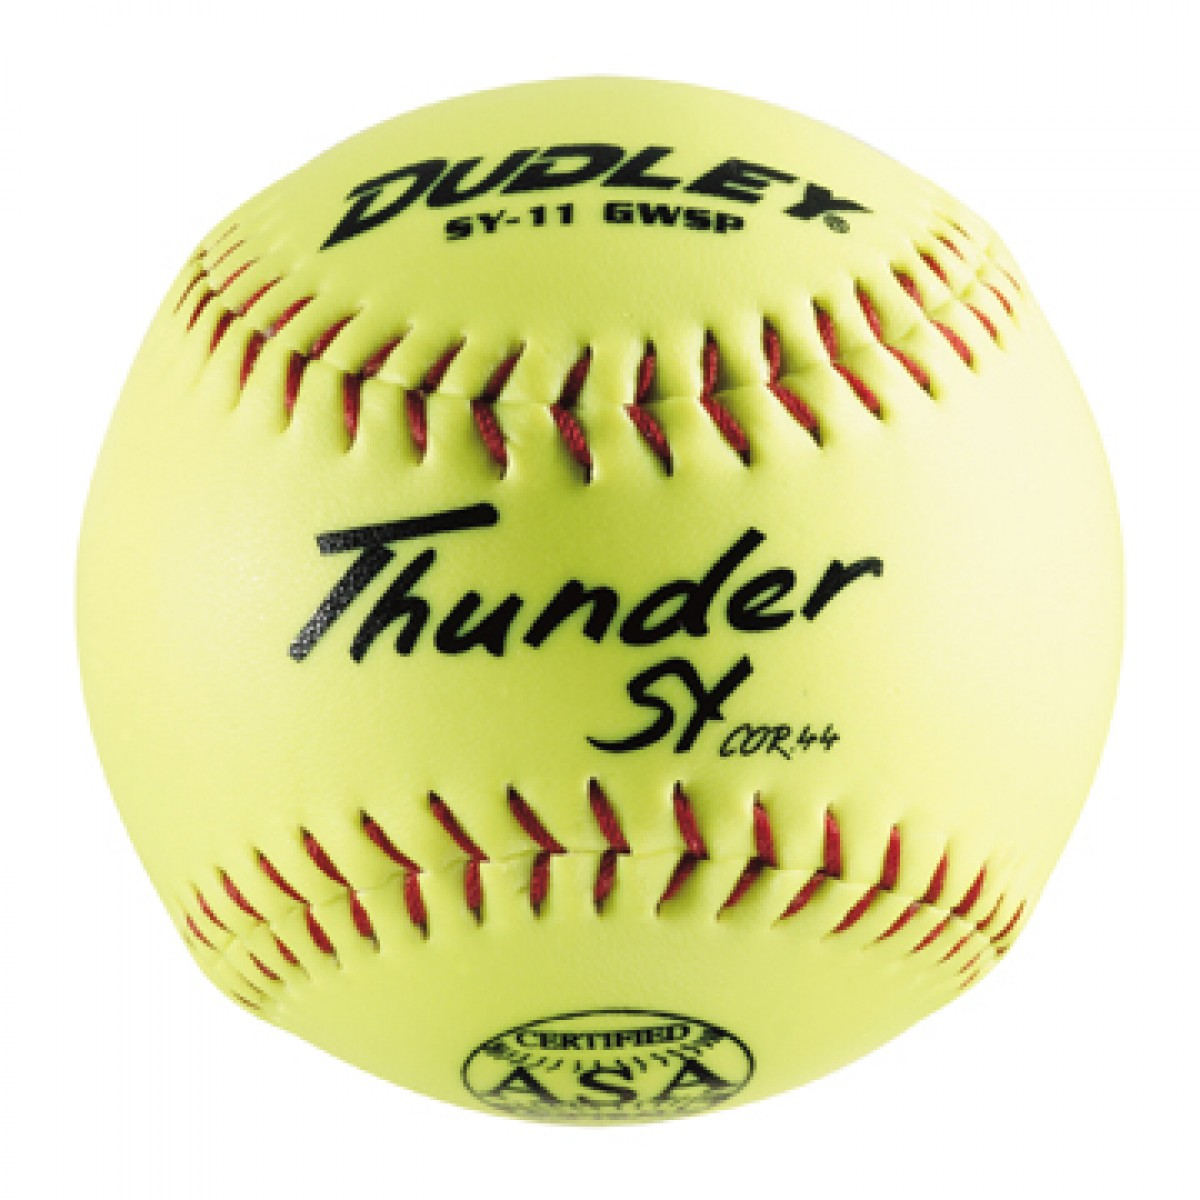 "4A913Y Dudley Thunder SY12RFFP-ASA 12"" Yellow Softball  47/375 MAIN"